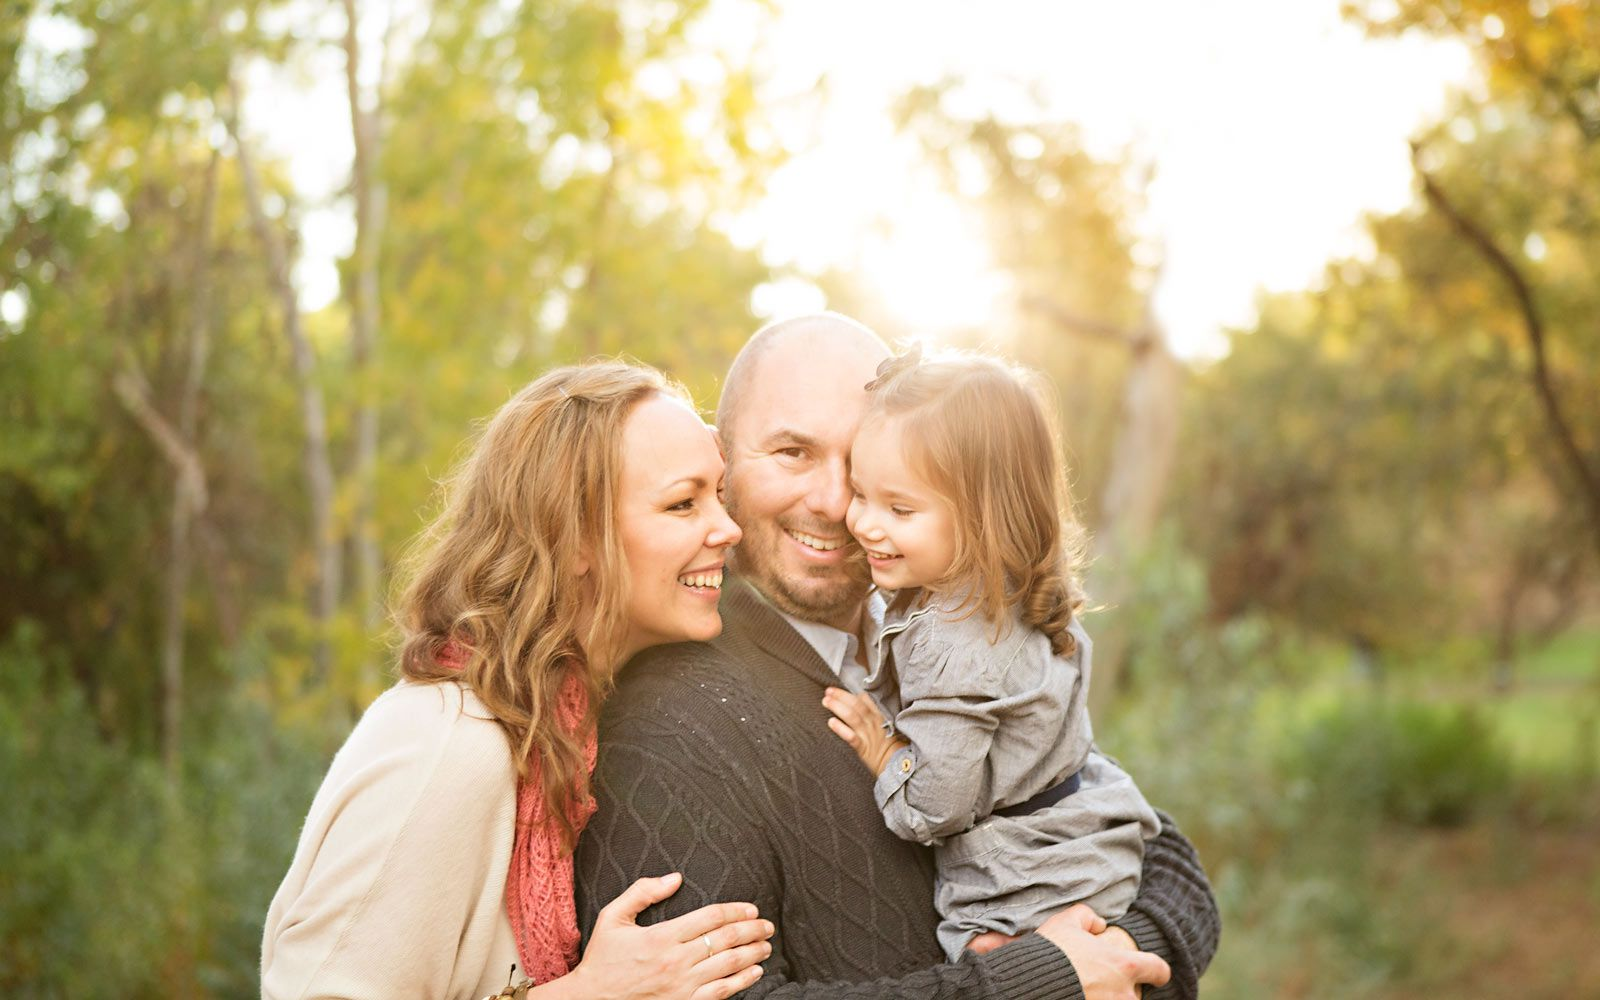 Six Tips to Create Amazing Outdoor Family Portraits ... |Outdoor Family Photography